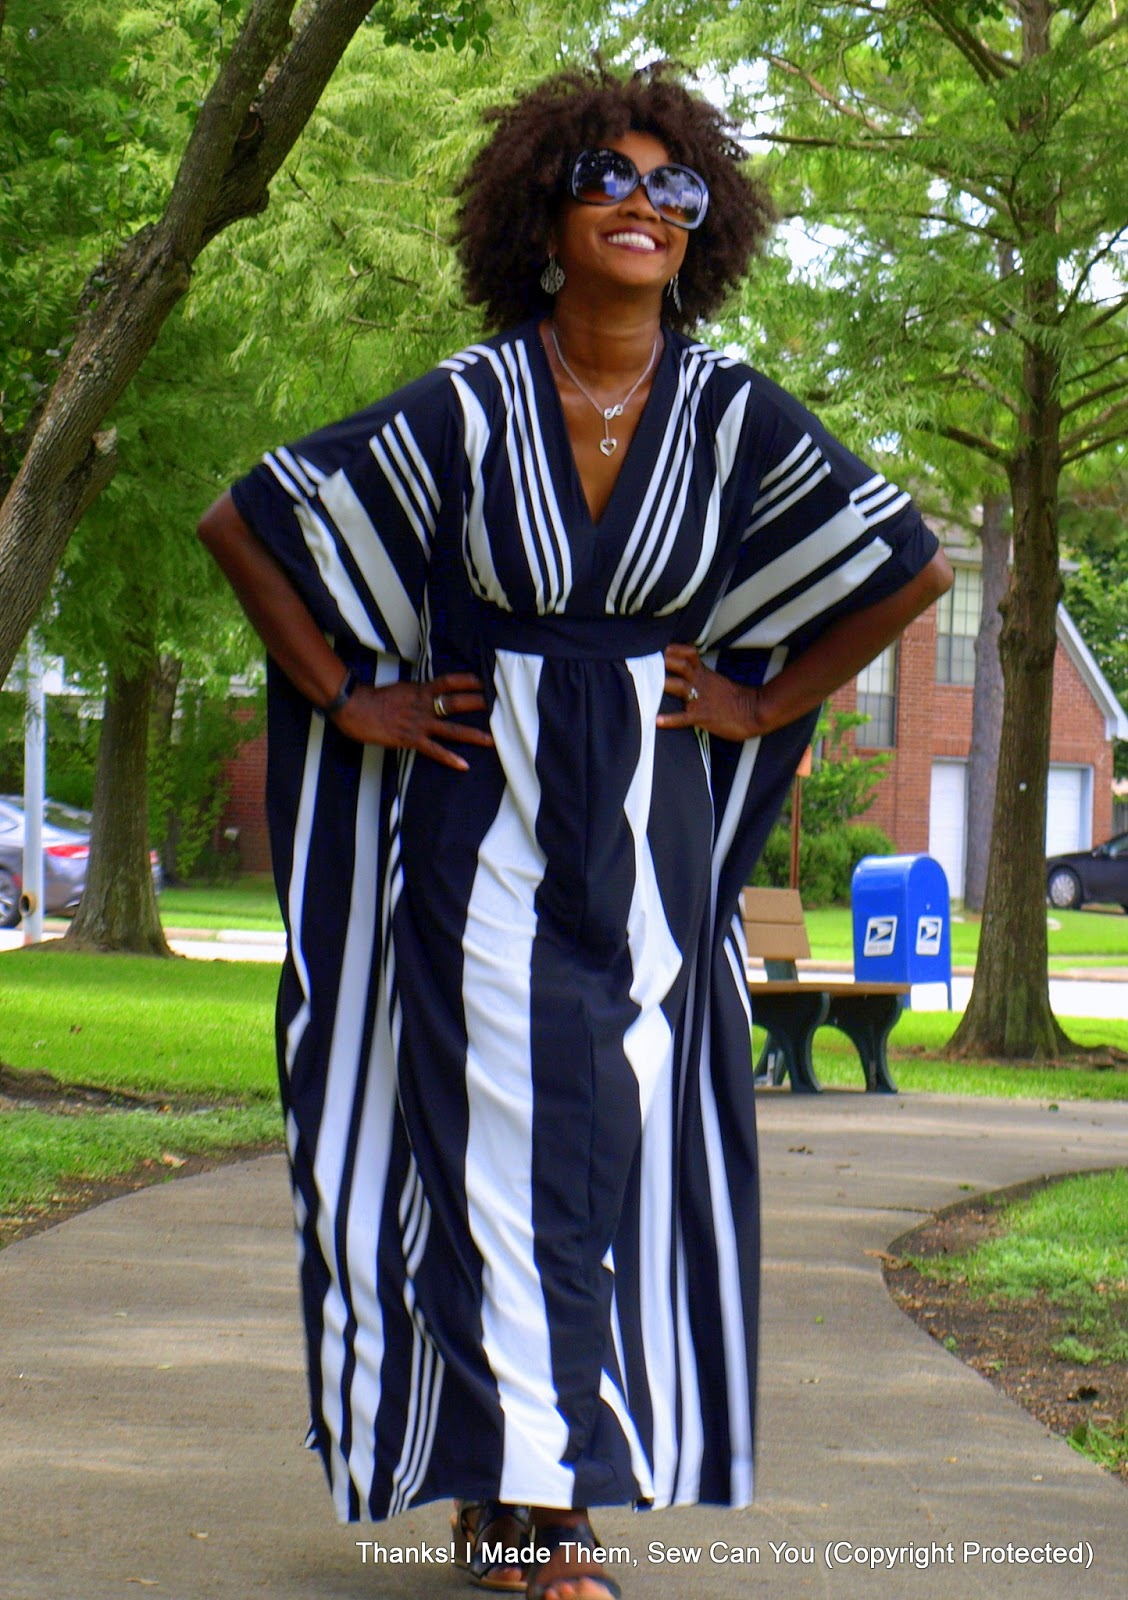 b2194a98da98f3 Thanks! I made them!: Falling in Love With Caftans